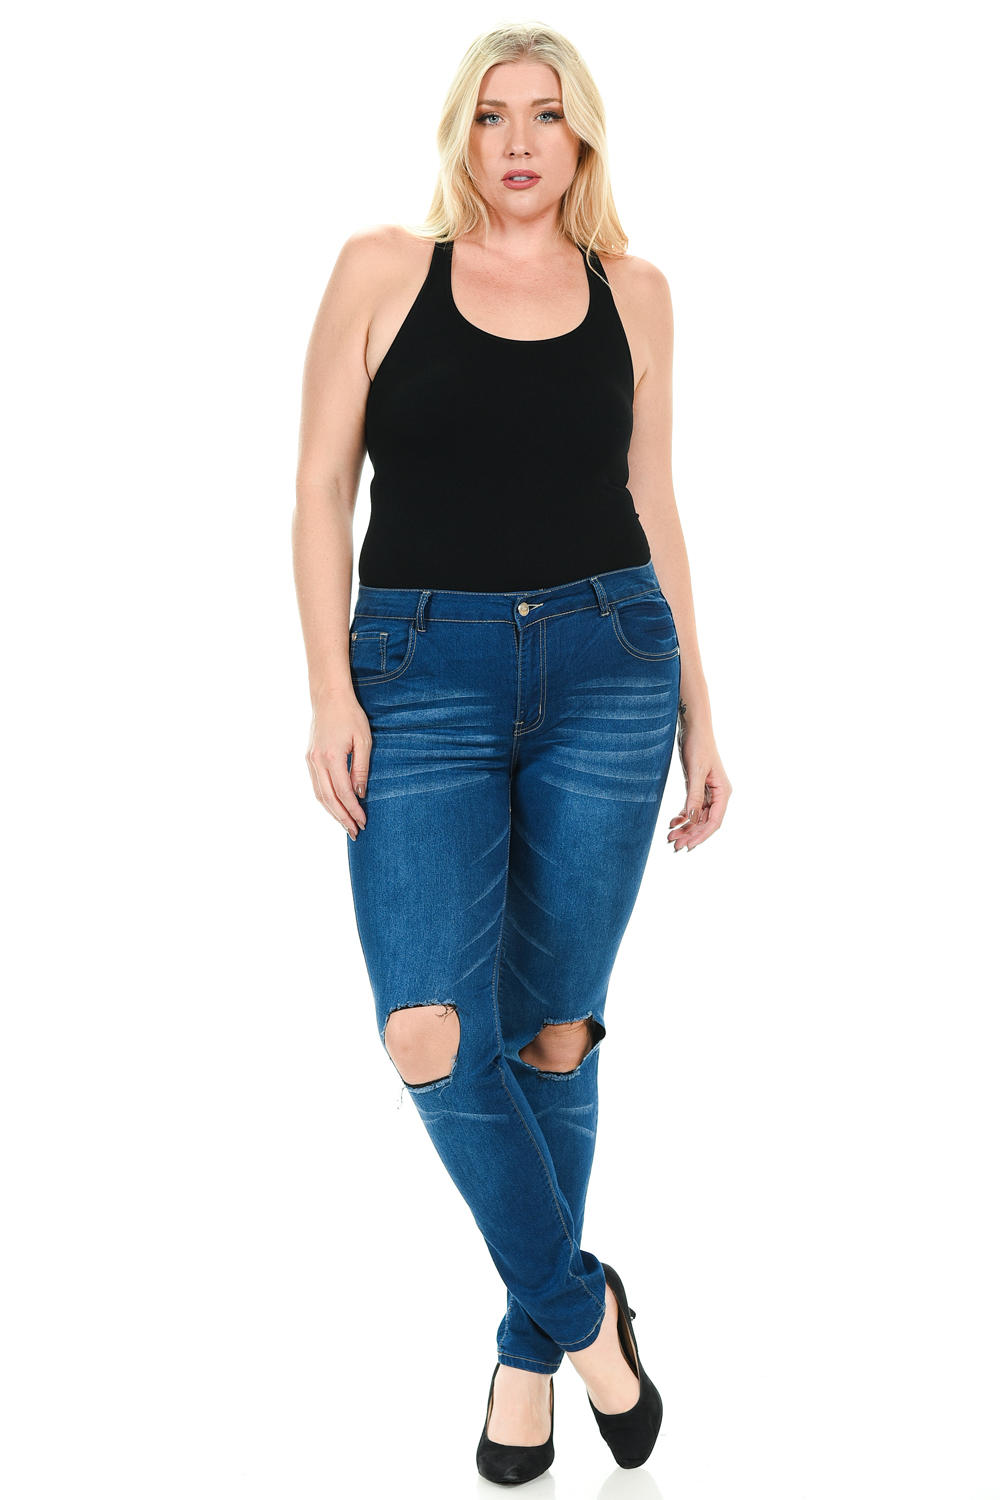 Sweet Look Premium Edition Women's Jeans - Plus Size - High Waist - Skinny - Style N066